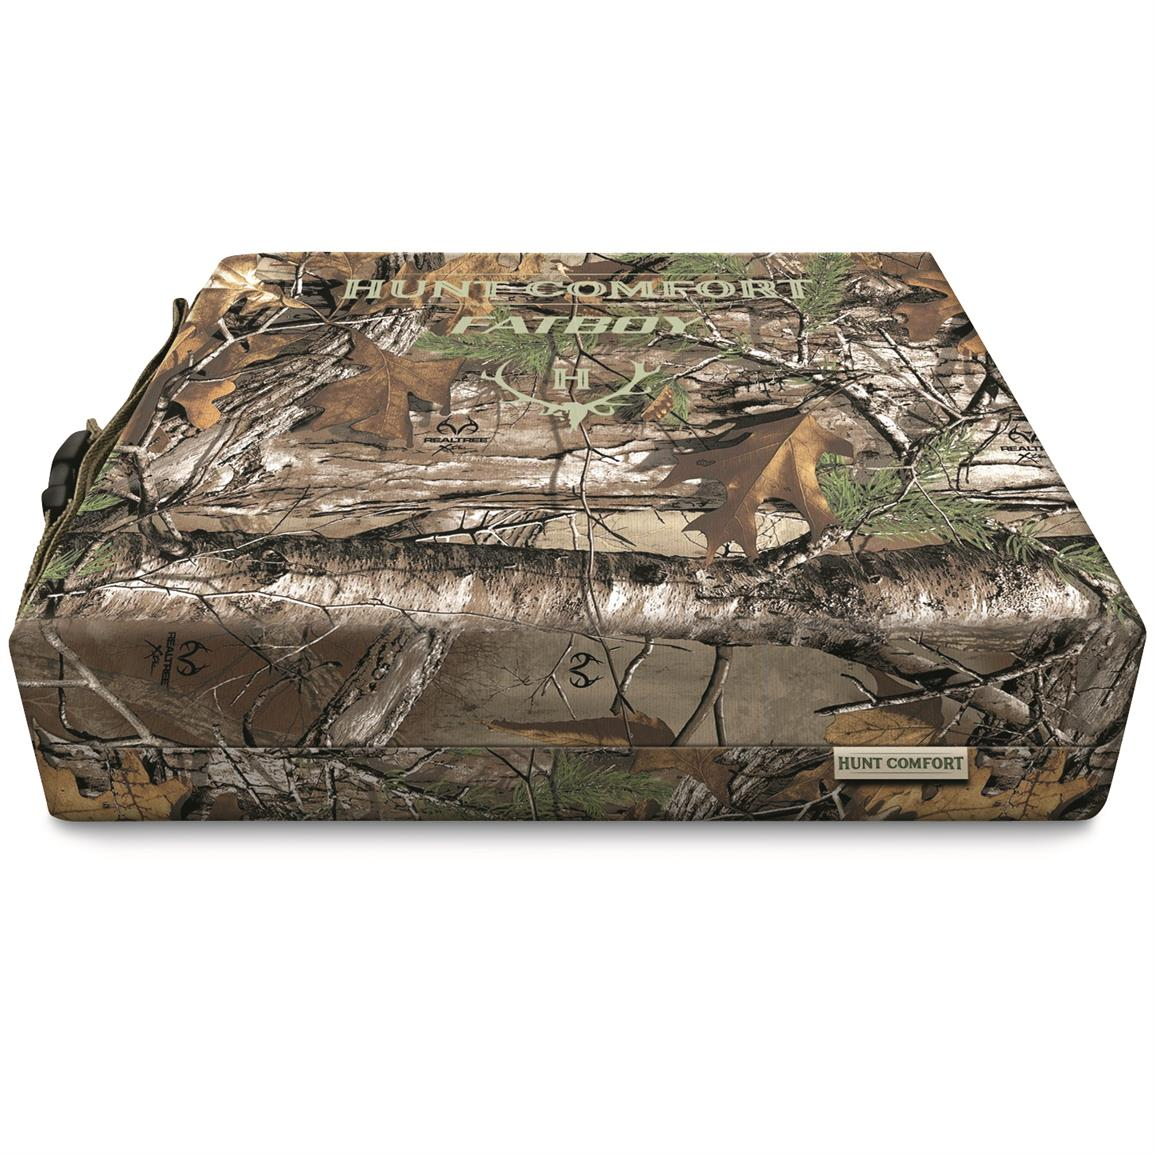 Hunt Comfort FatBoy Ultra Premium GelCore Hunting Seat